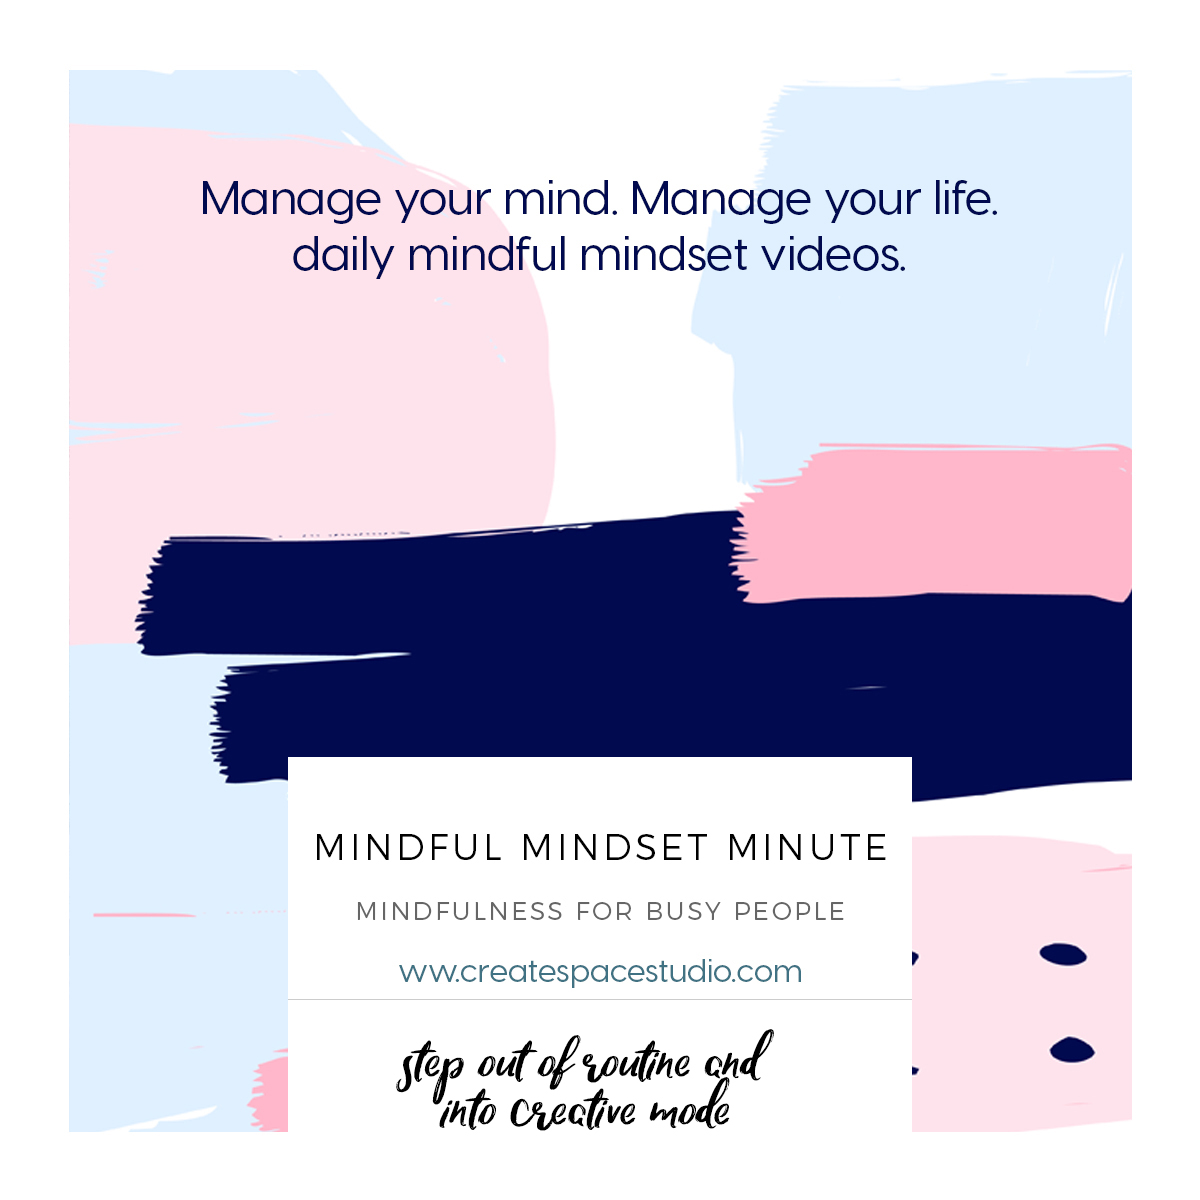 Step out of routine and into creative mode - mindful mindset minute with Cheryl Sosnowski createspacestuio.com